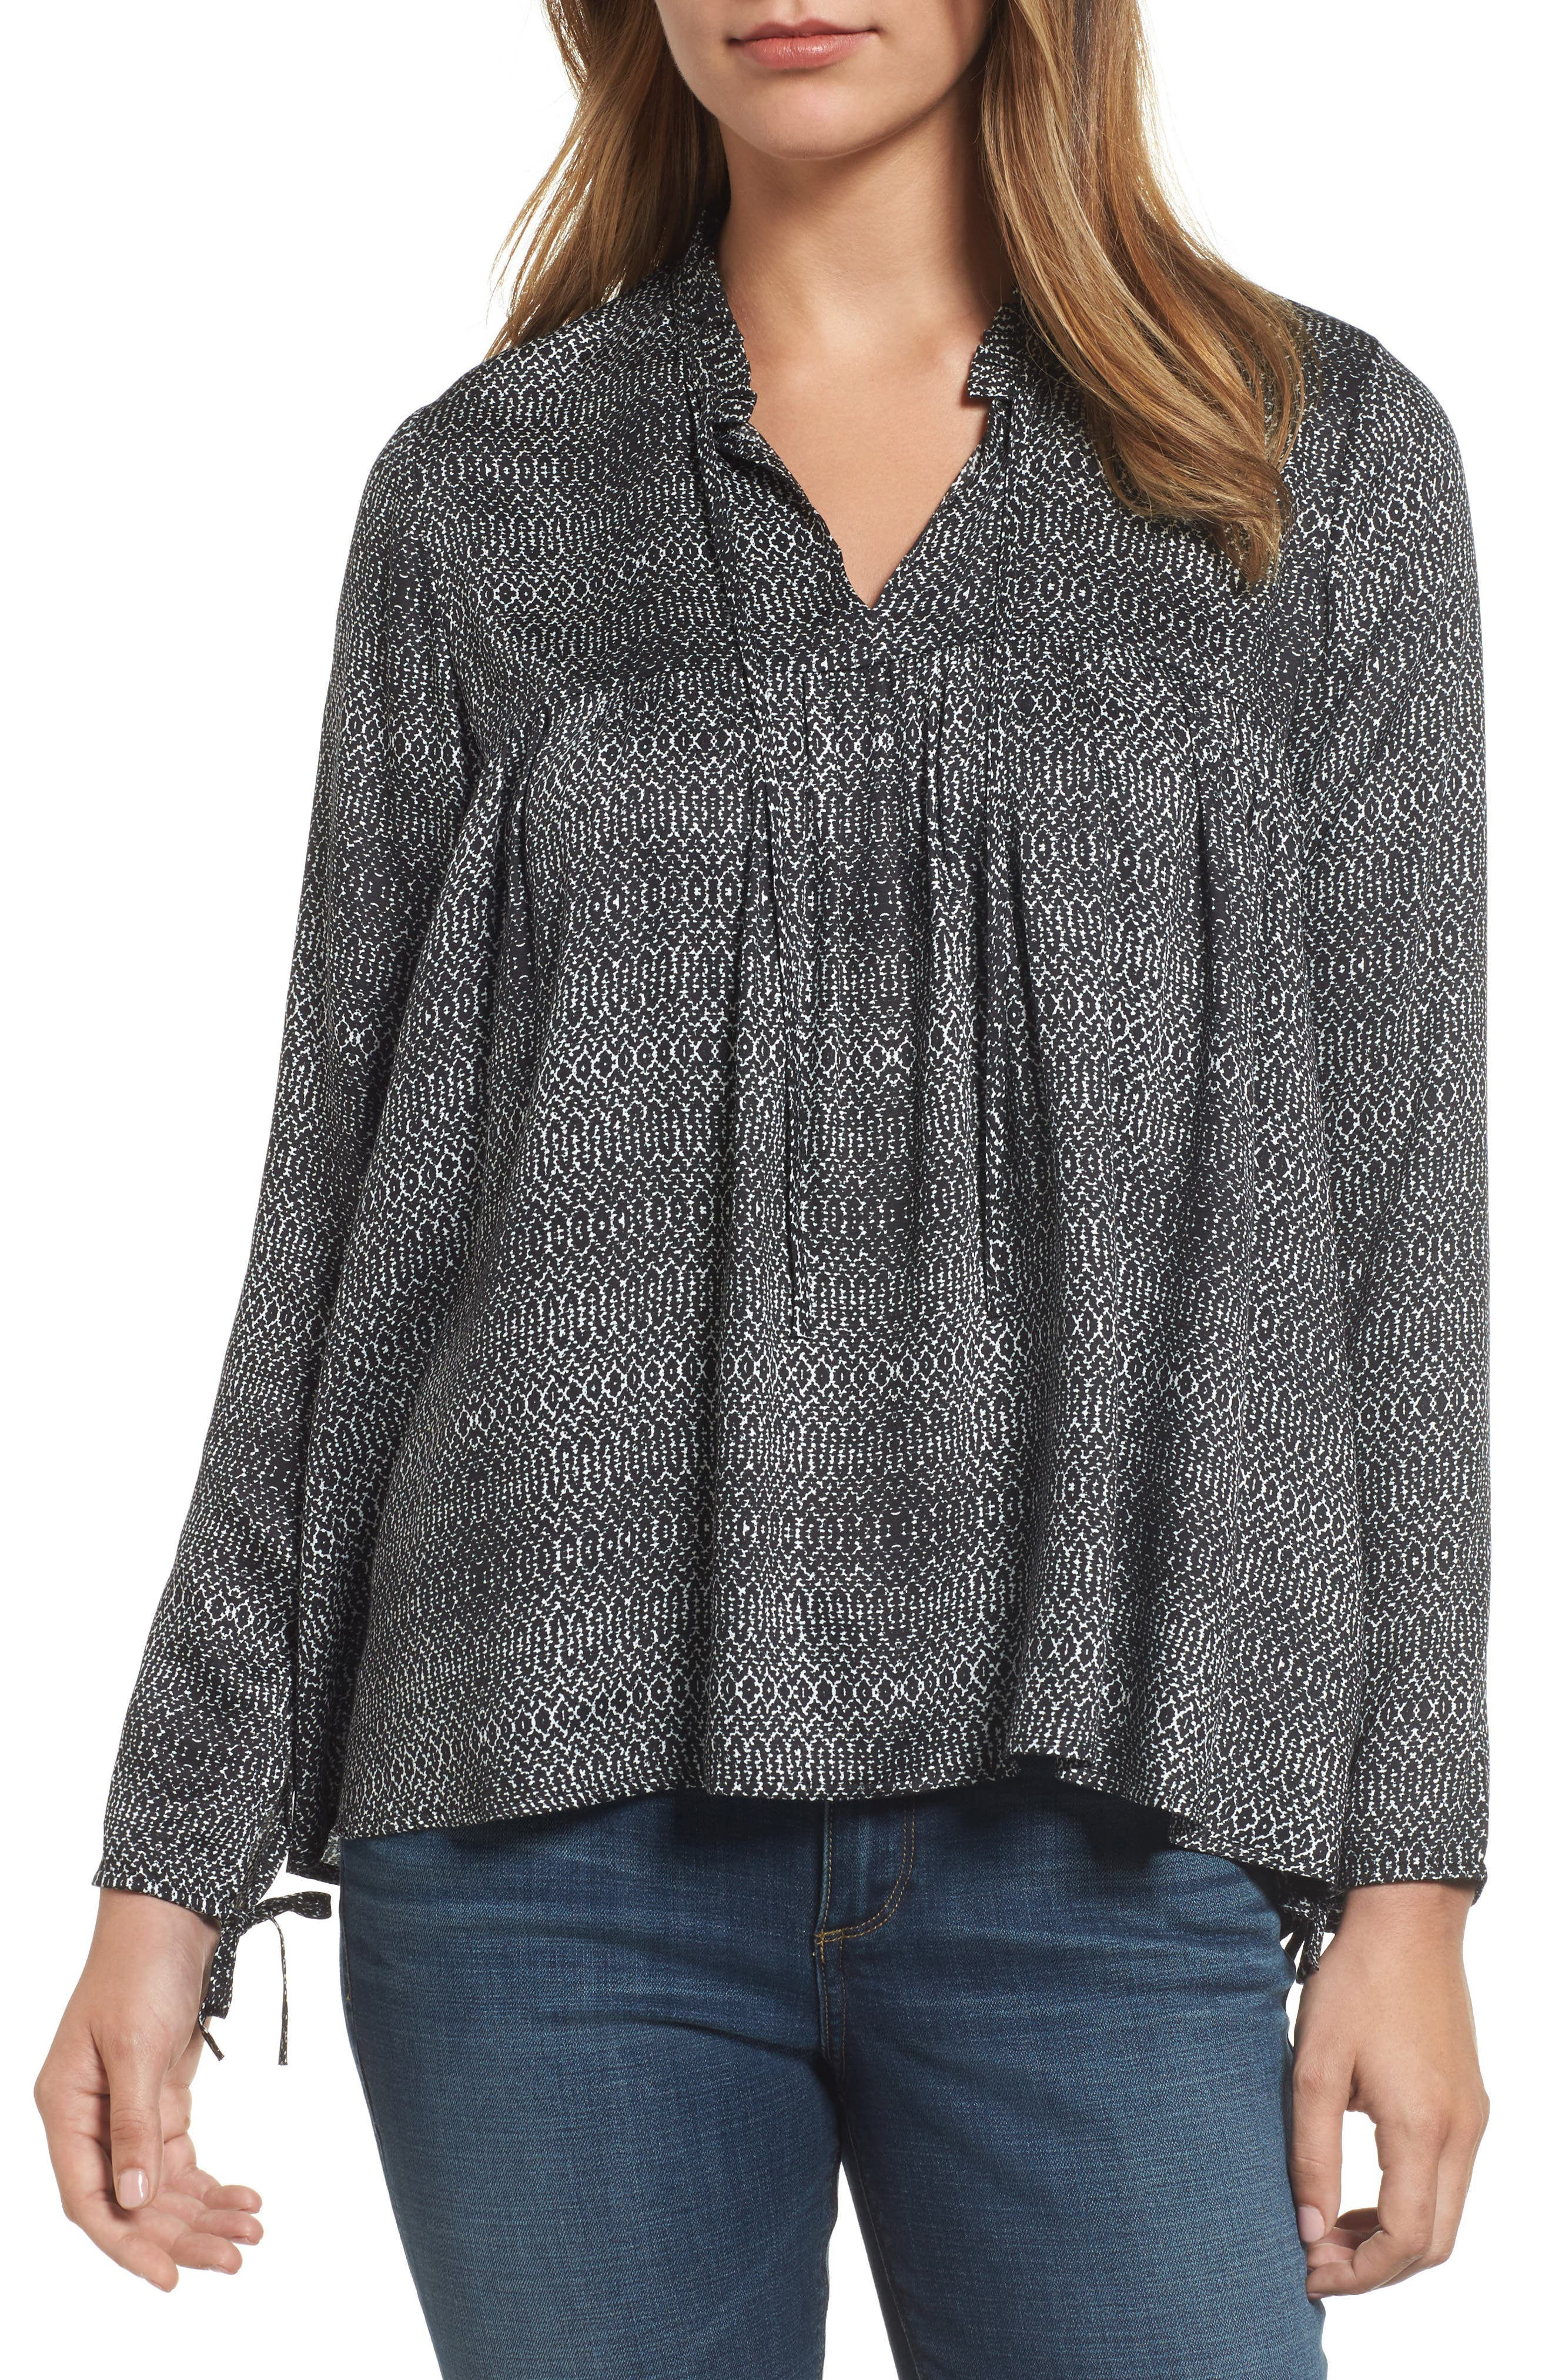 Shirred Woven Print Top,                         Main,                         color, Crackle